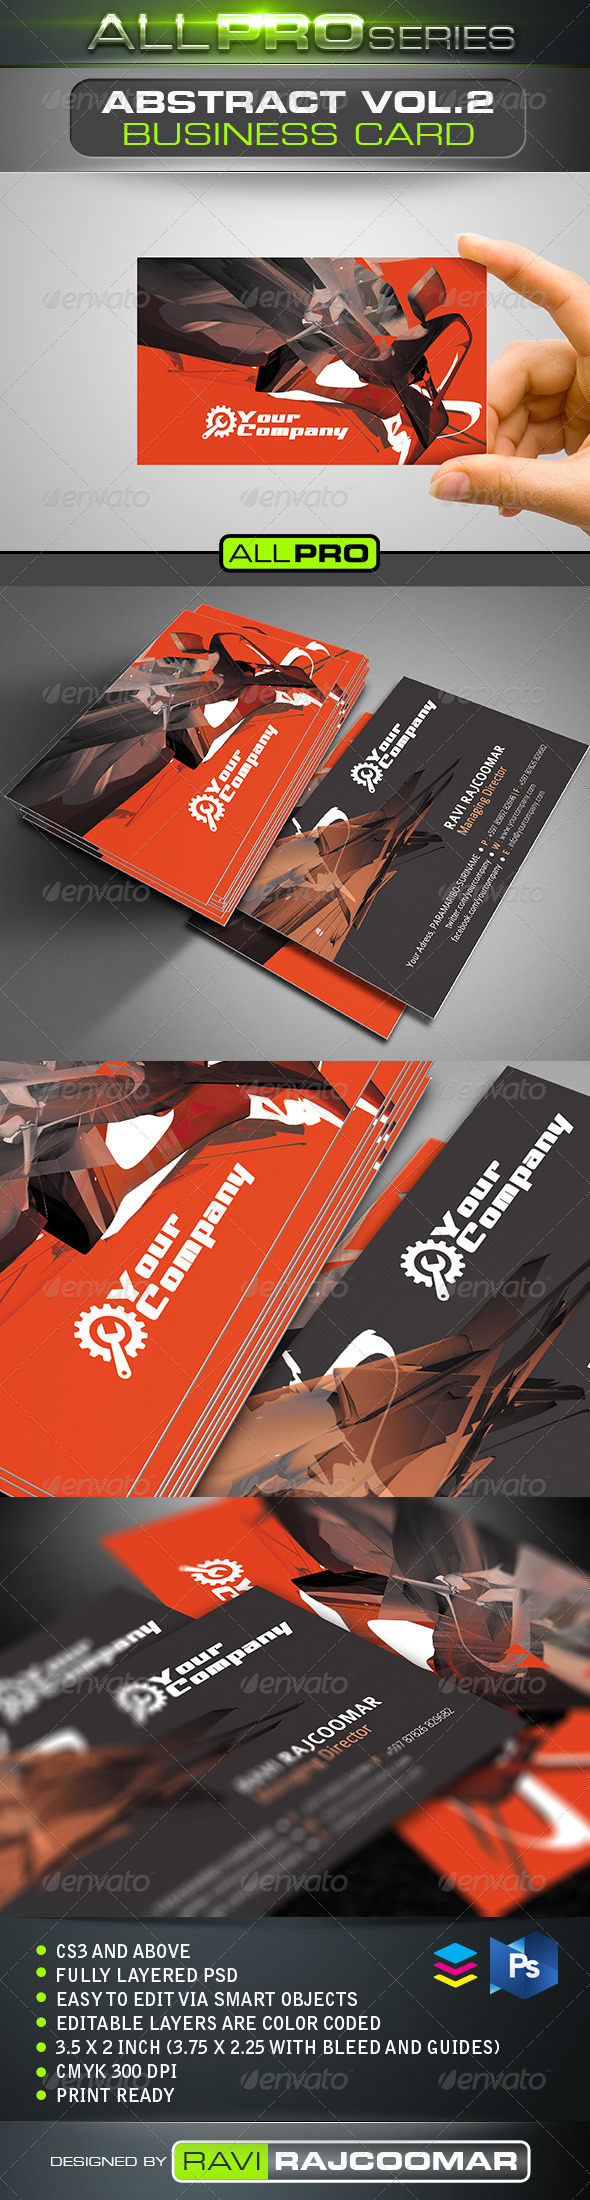 GraphicRiver Abstract Business Card Vol.2 5128716